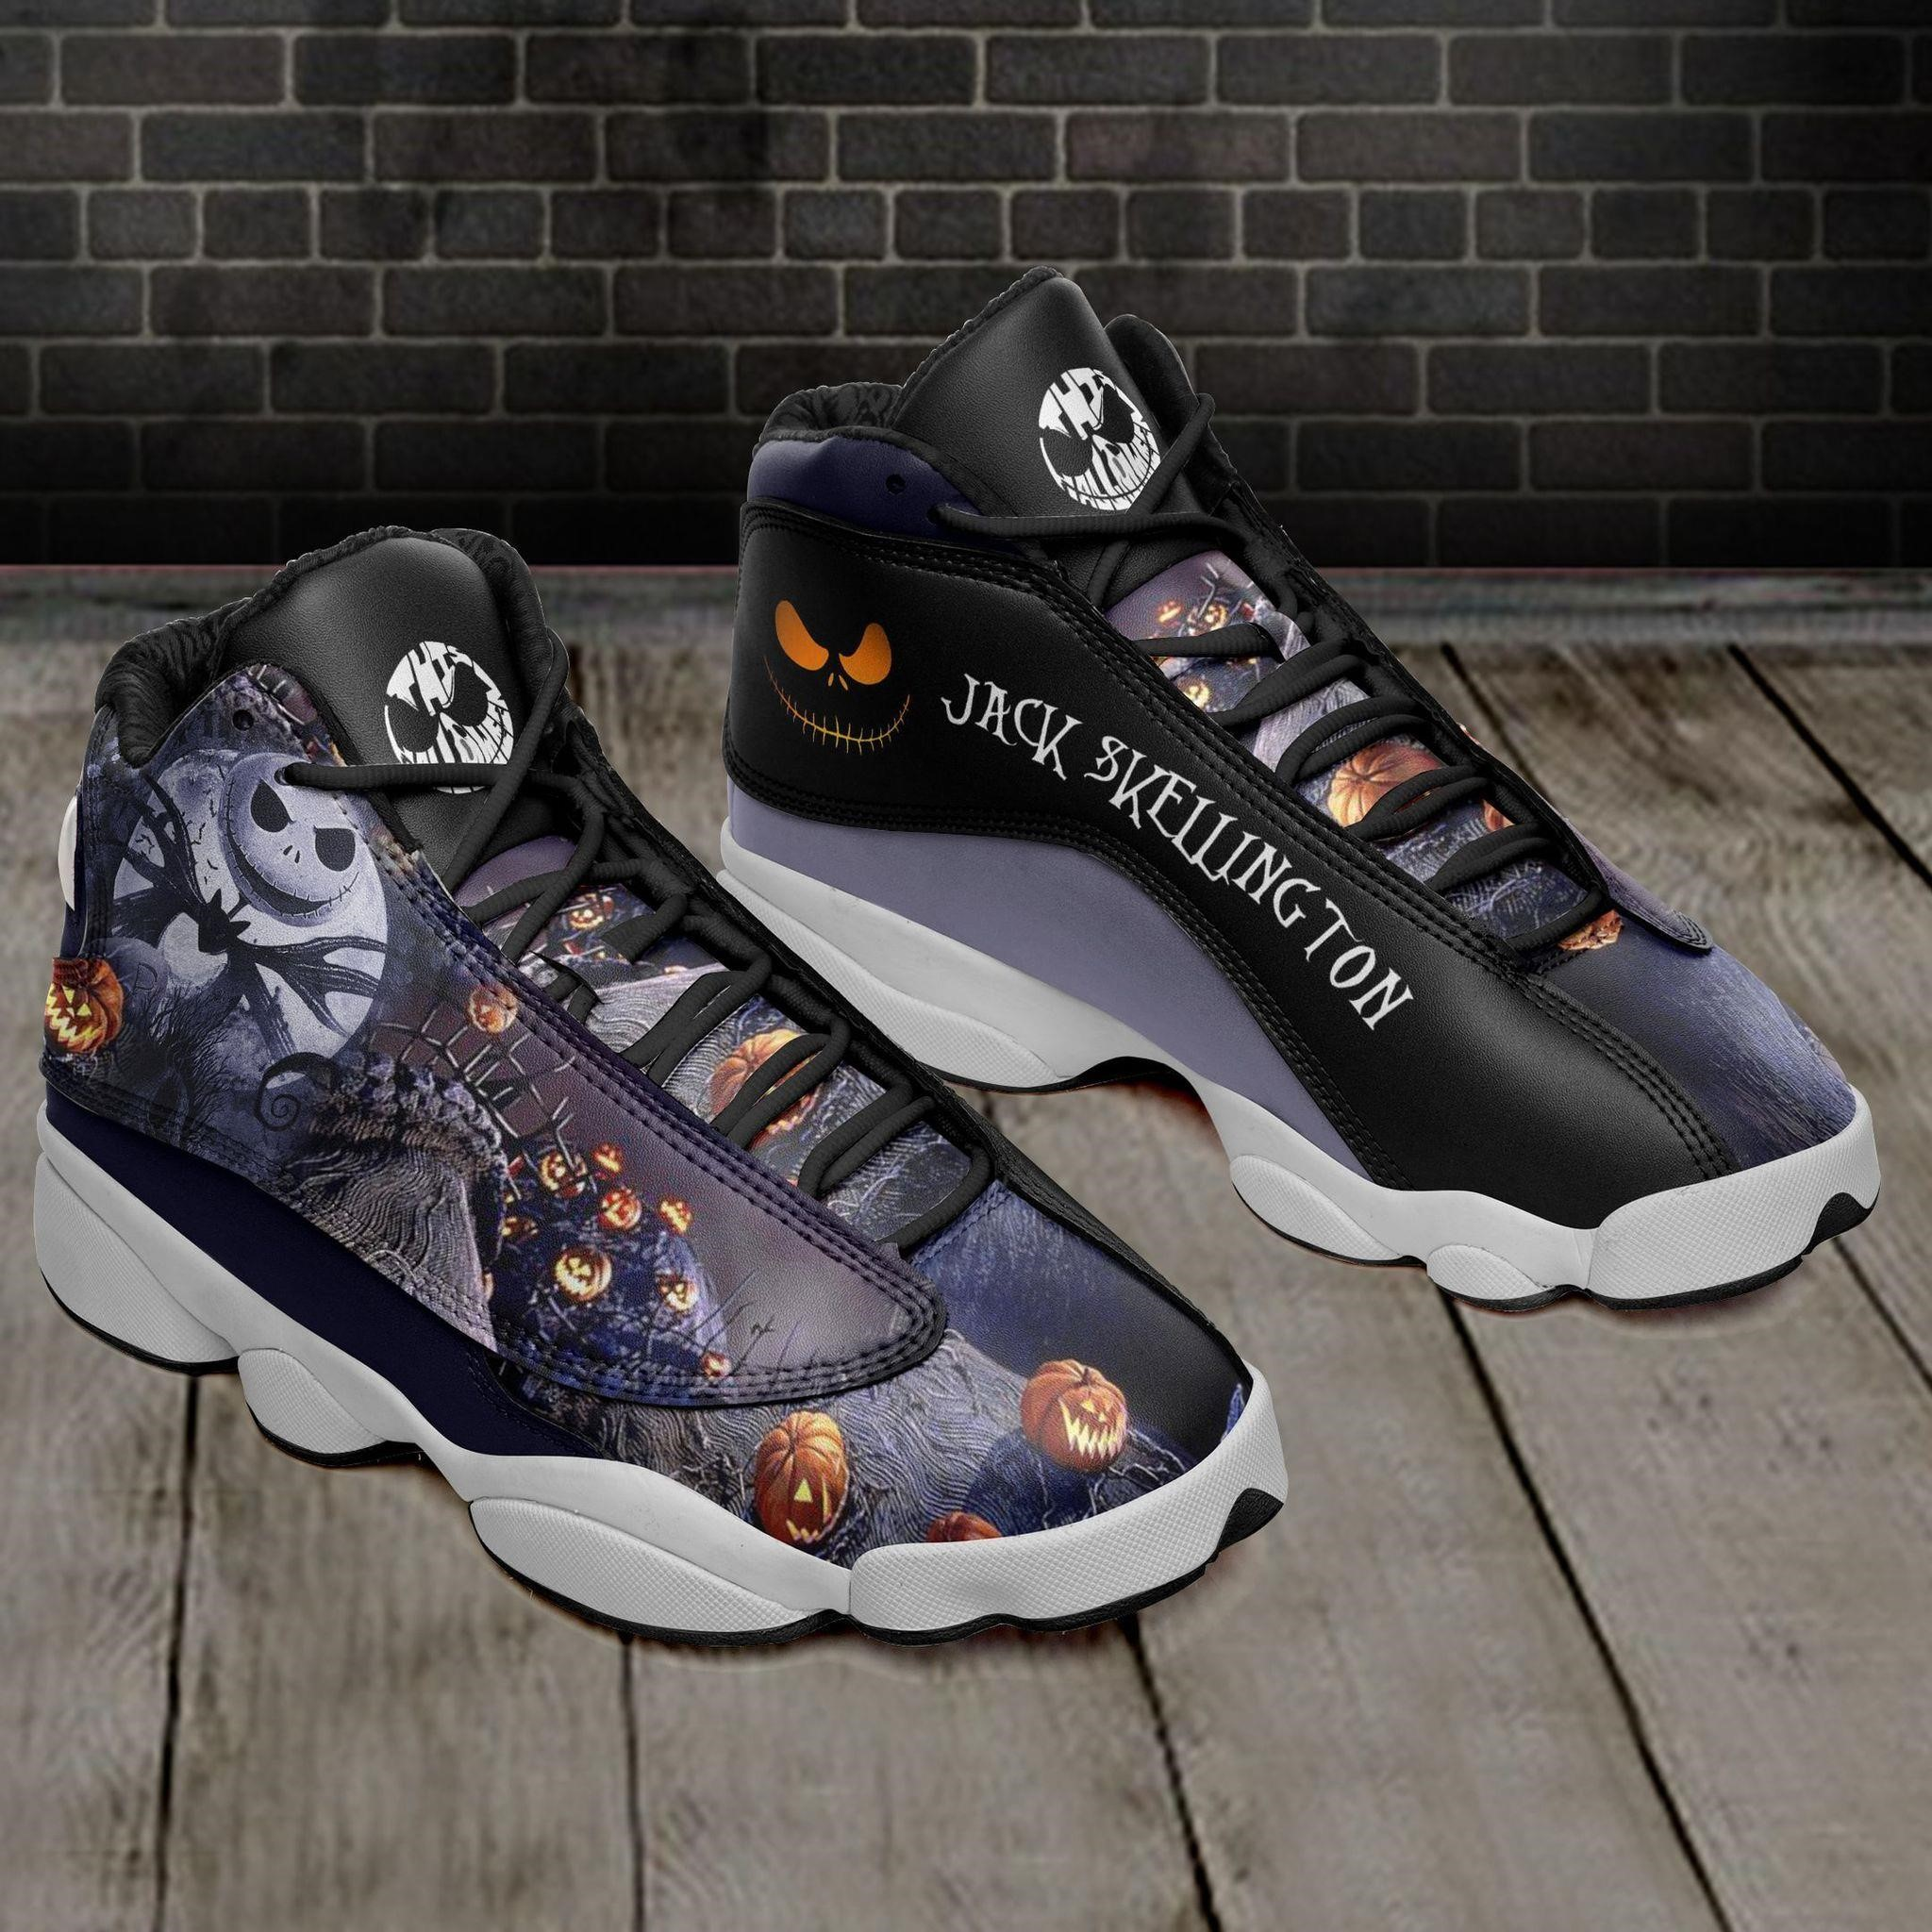 Jack Skellington Halloween Ajd13 Sneakers